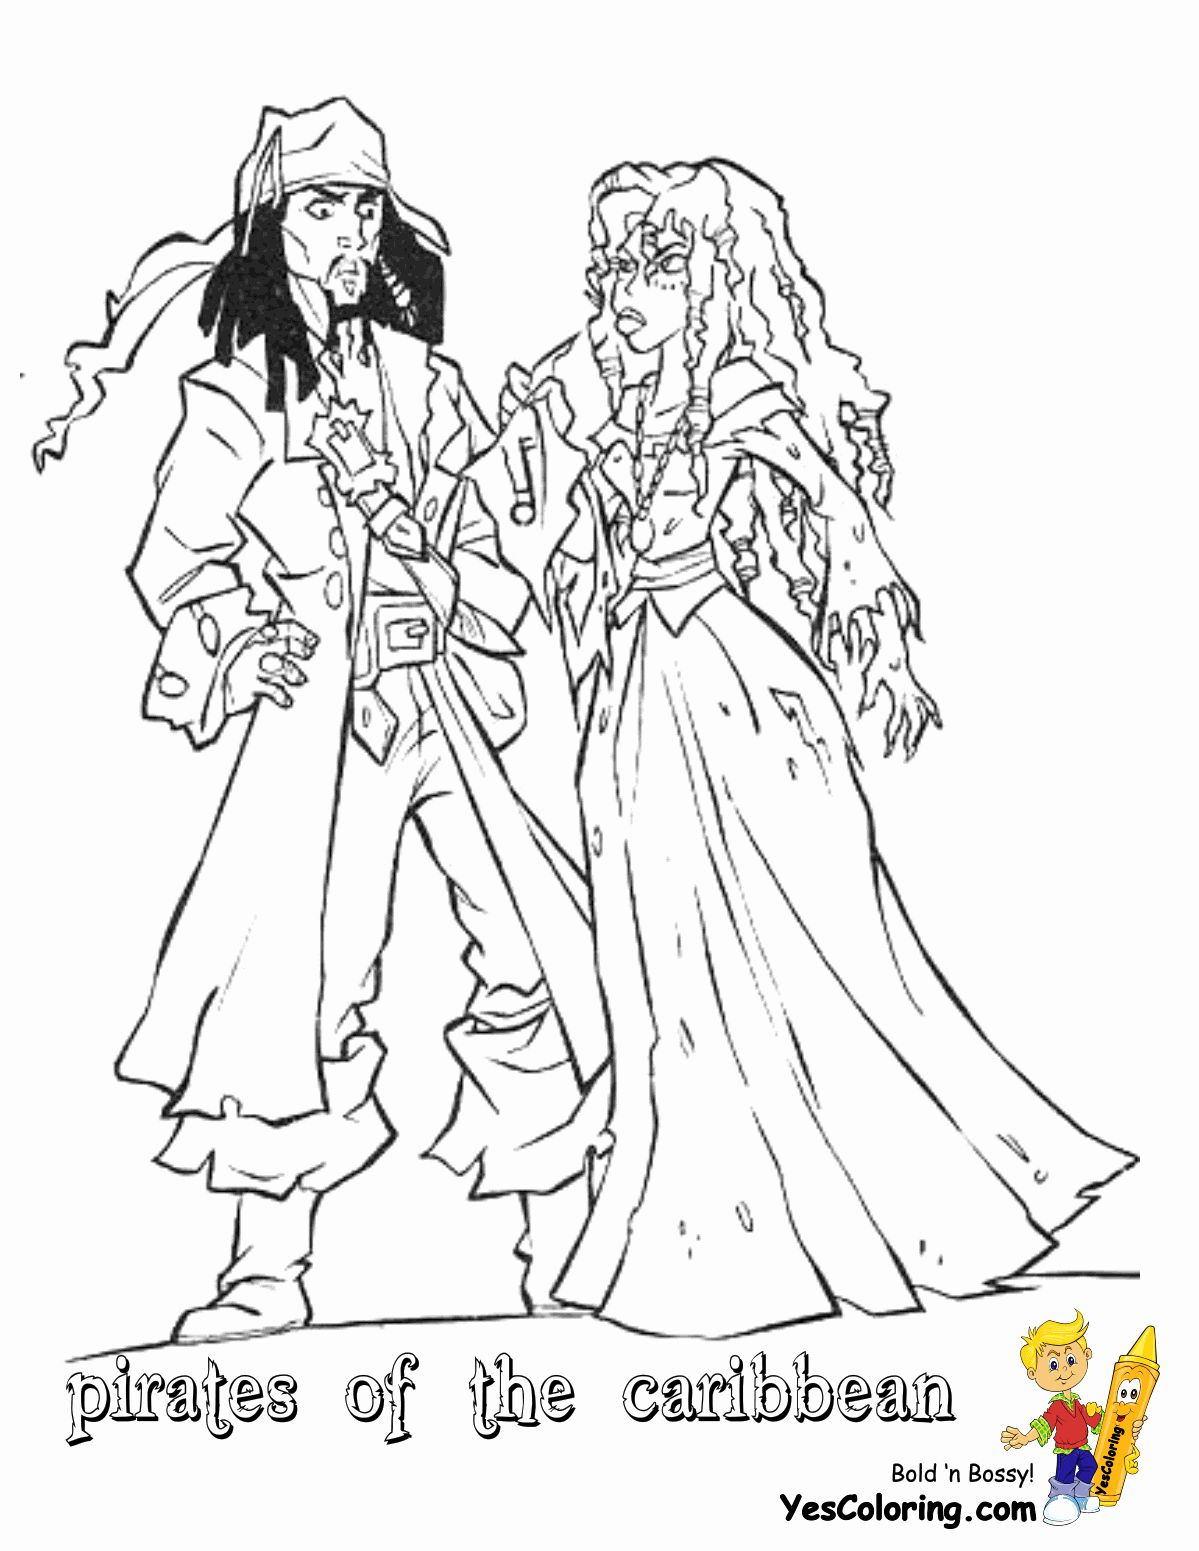 Pirates Of The Caribbean Coloring Page Lovely Pirates Caribbean Coloring Pages In 2020 Coloring Pages Disney Coloring Pages Pirate Coloring Pages